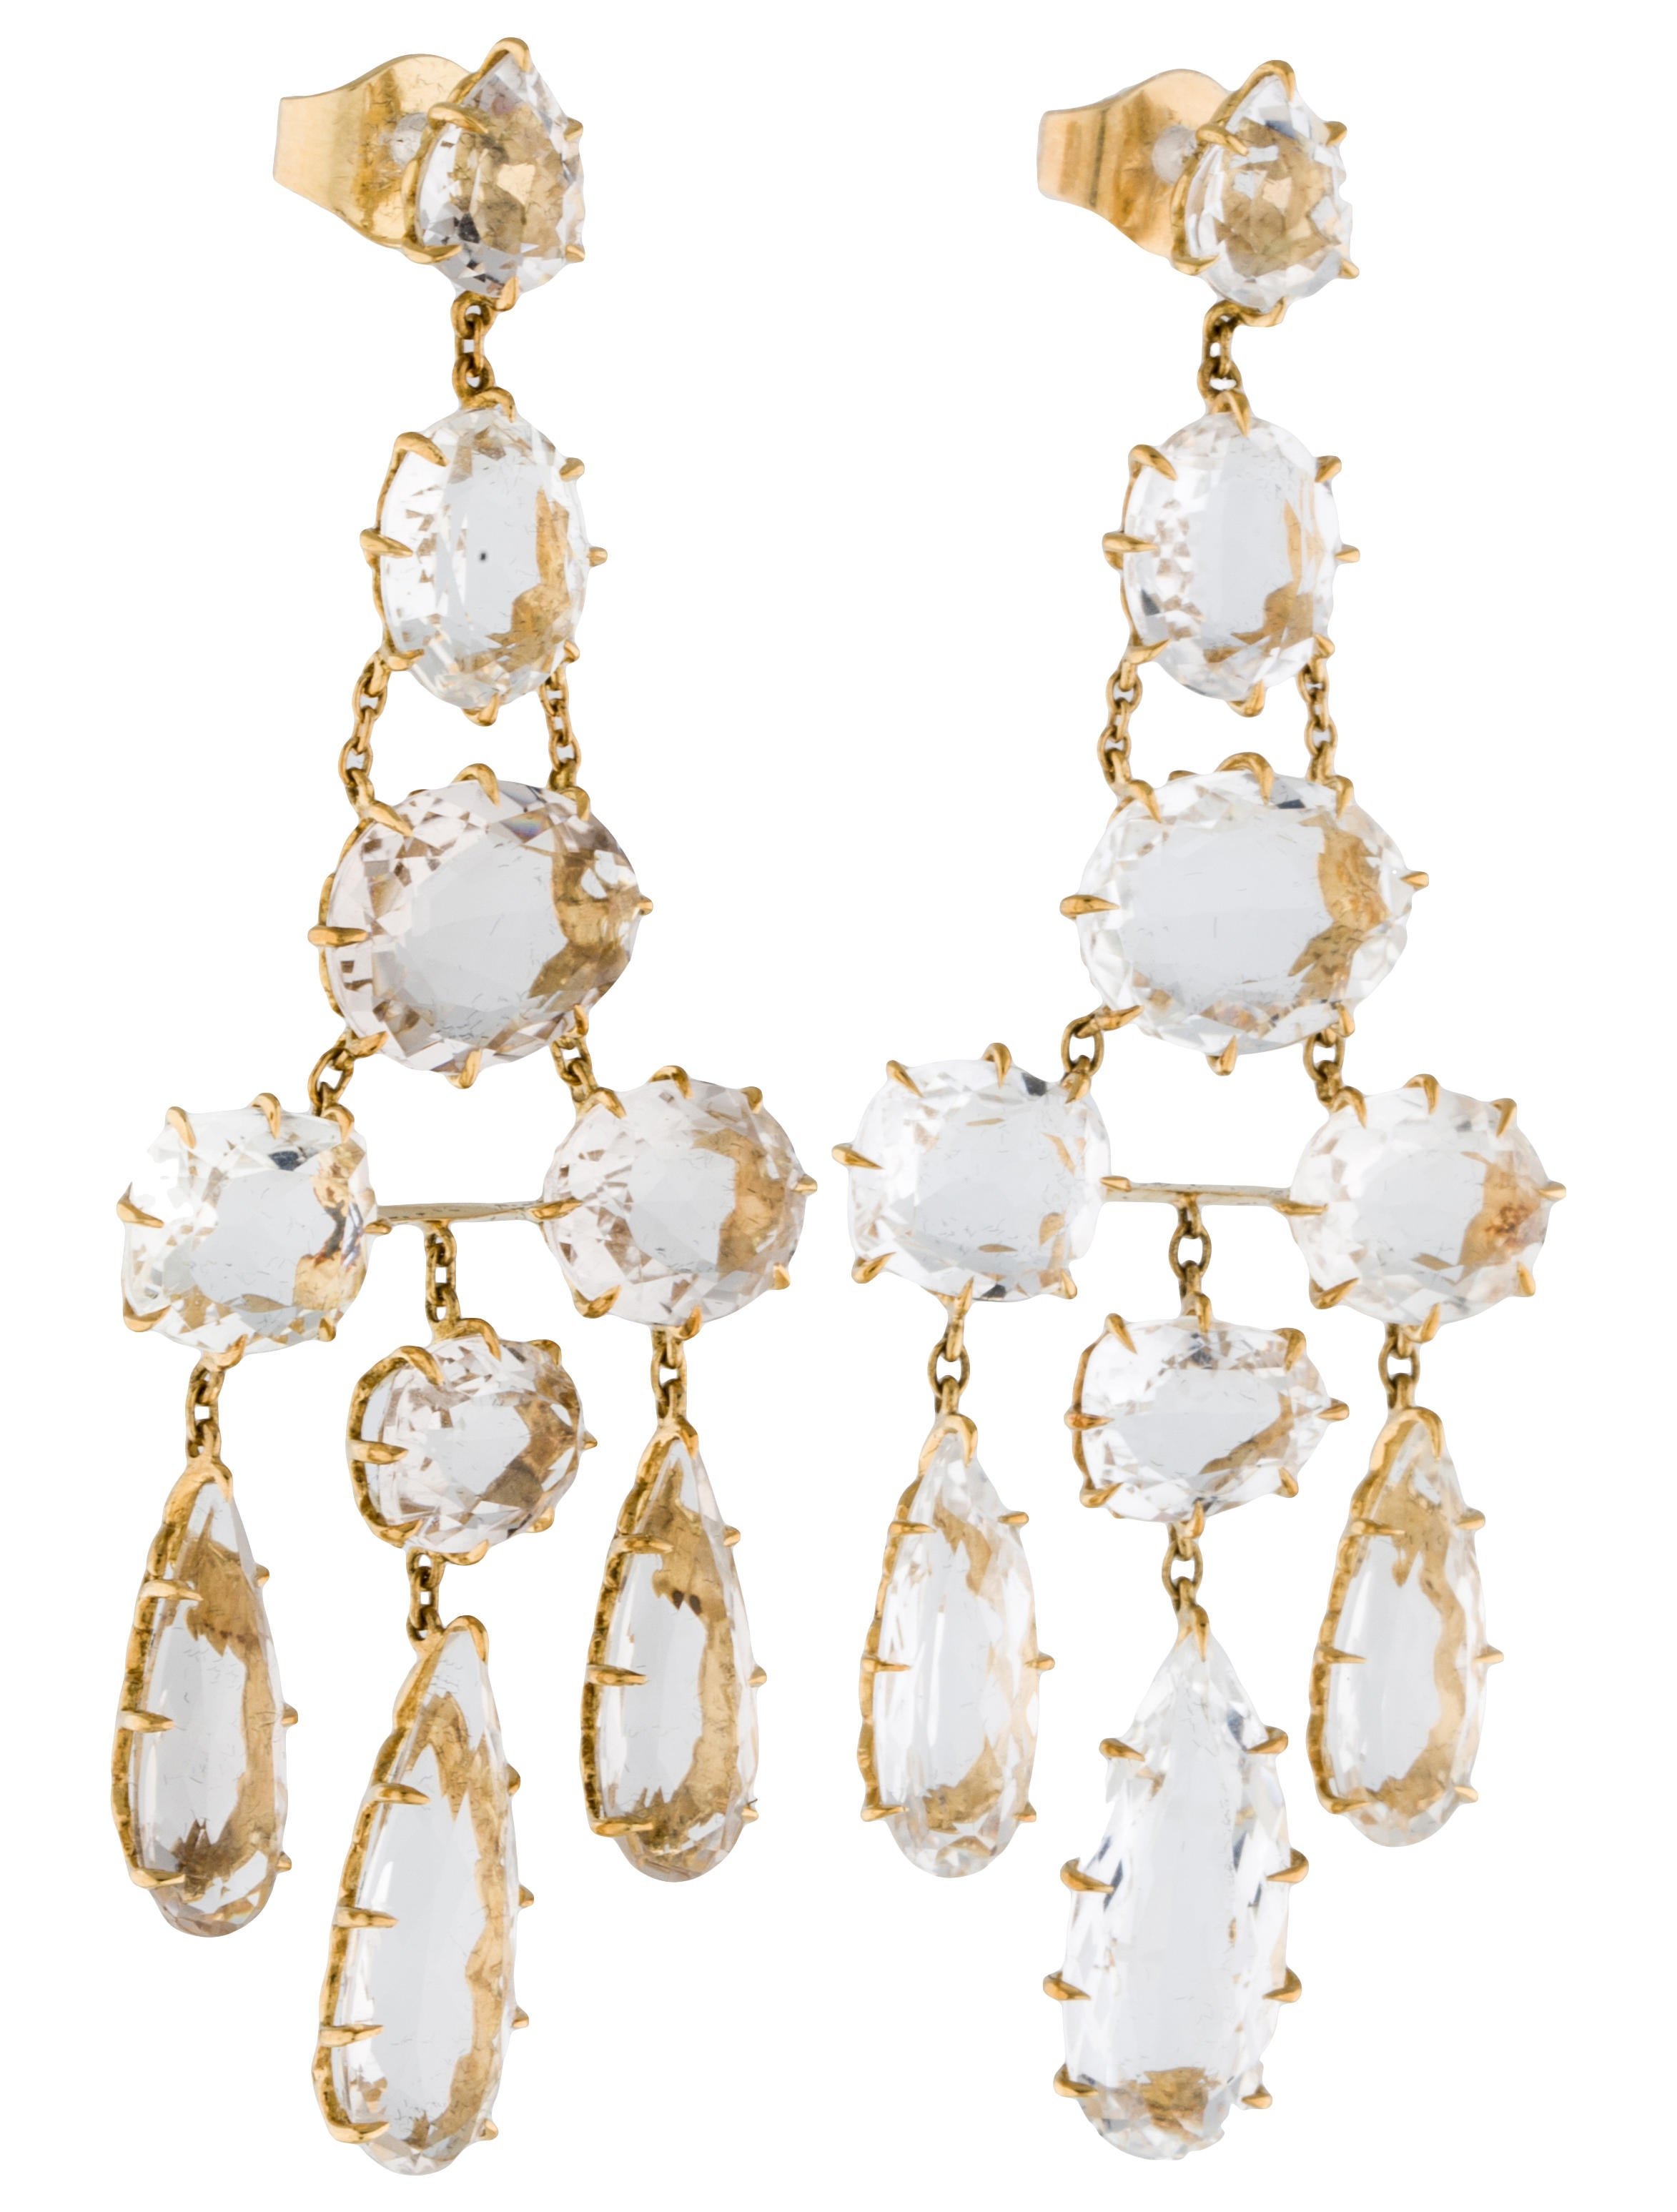 H Stern Rock Crystal Chandelier Earrings Earrings HST